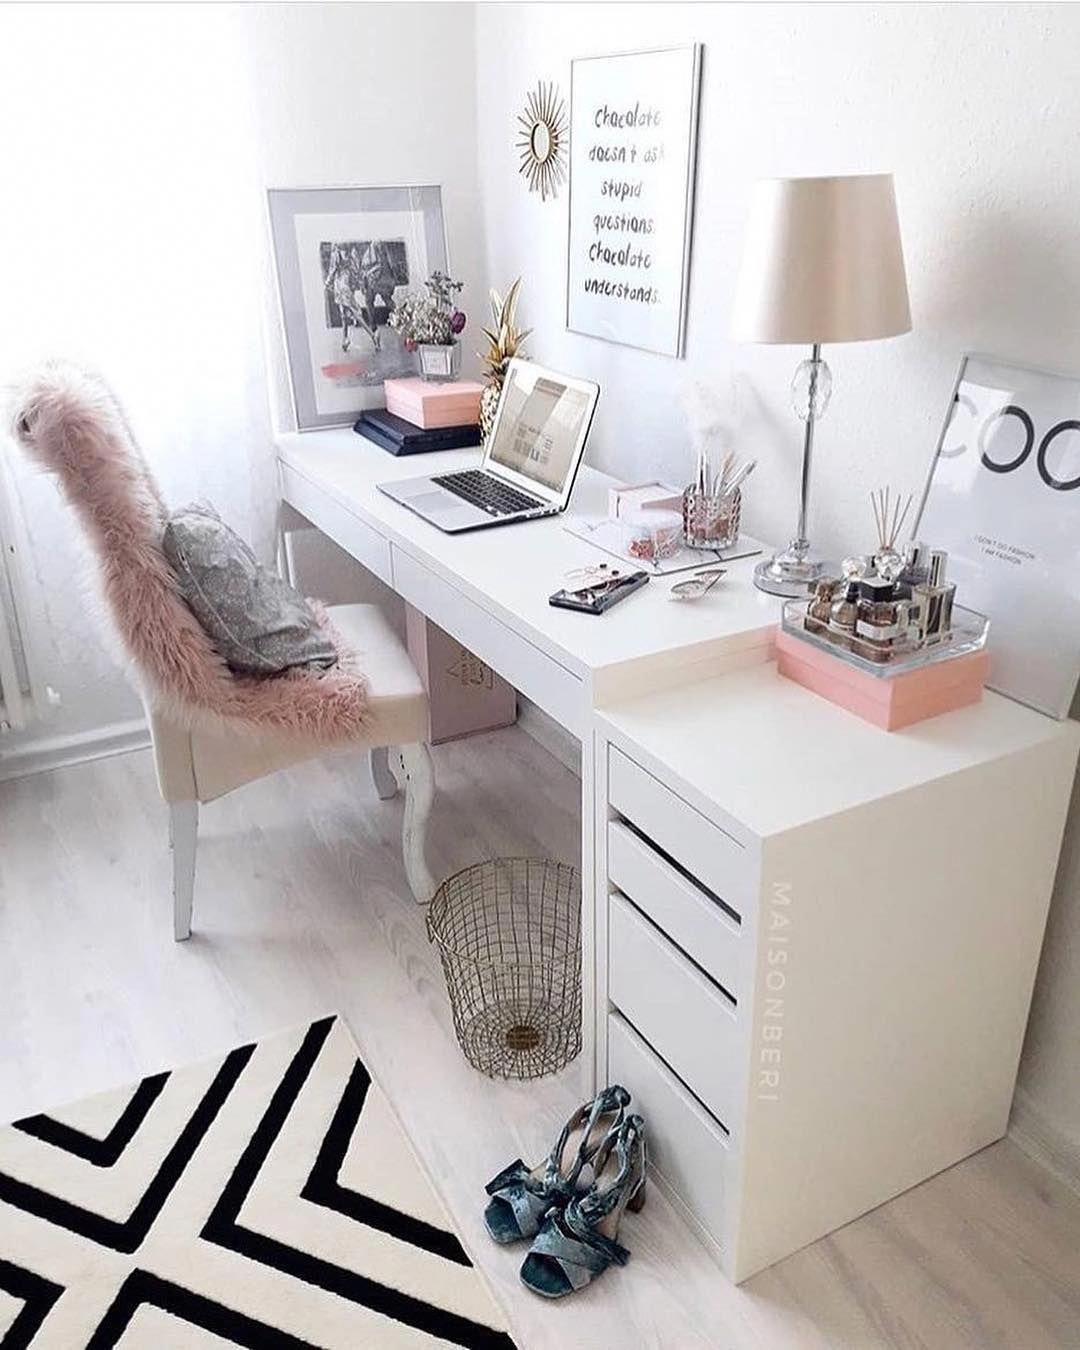 Home Decor Items Home Office Workstation Ideas Home Office Plans And Designs 20181216 Cozy Home Office Home Office Space Home Office Decor